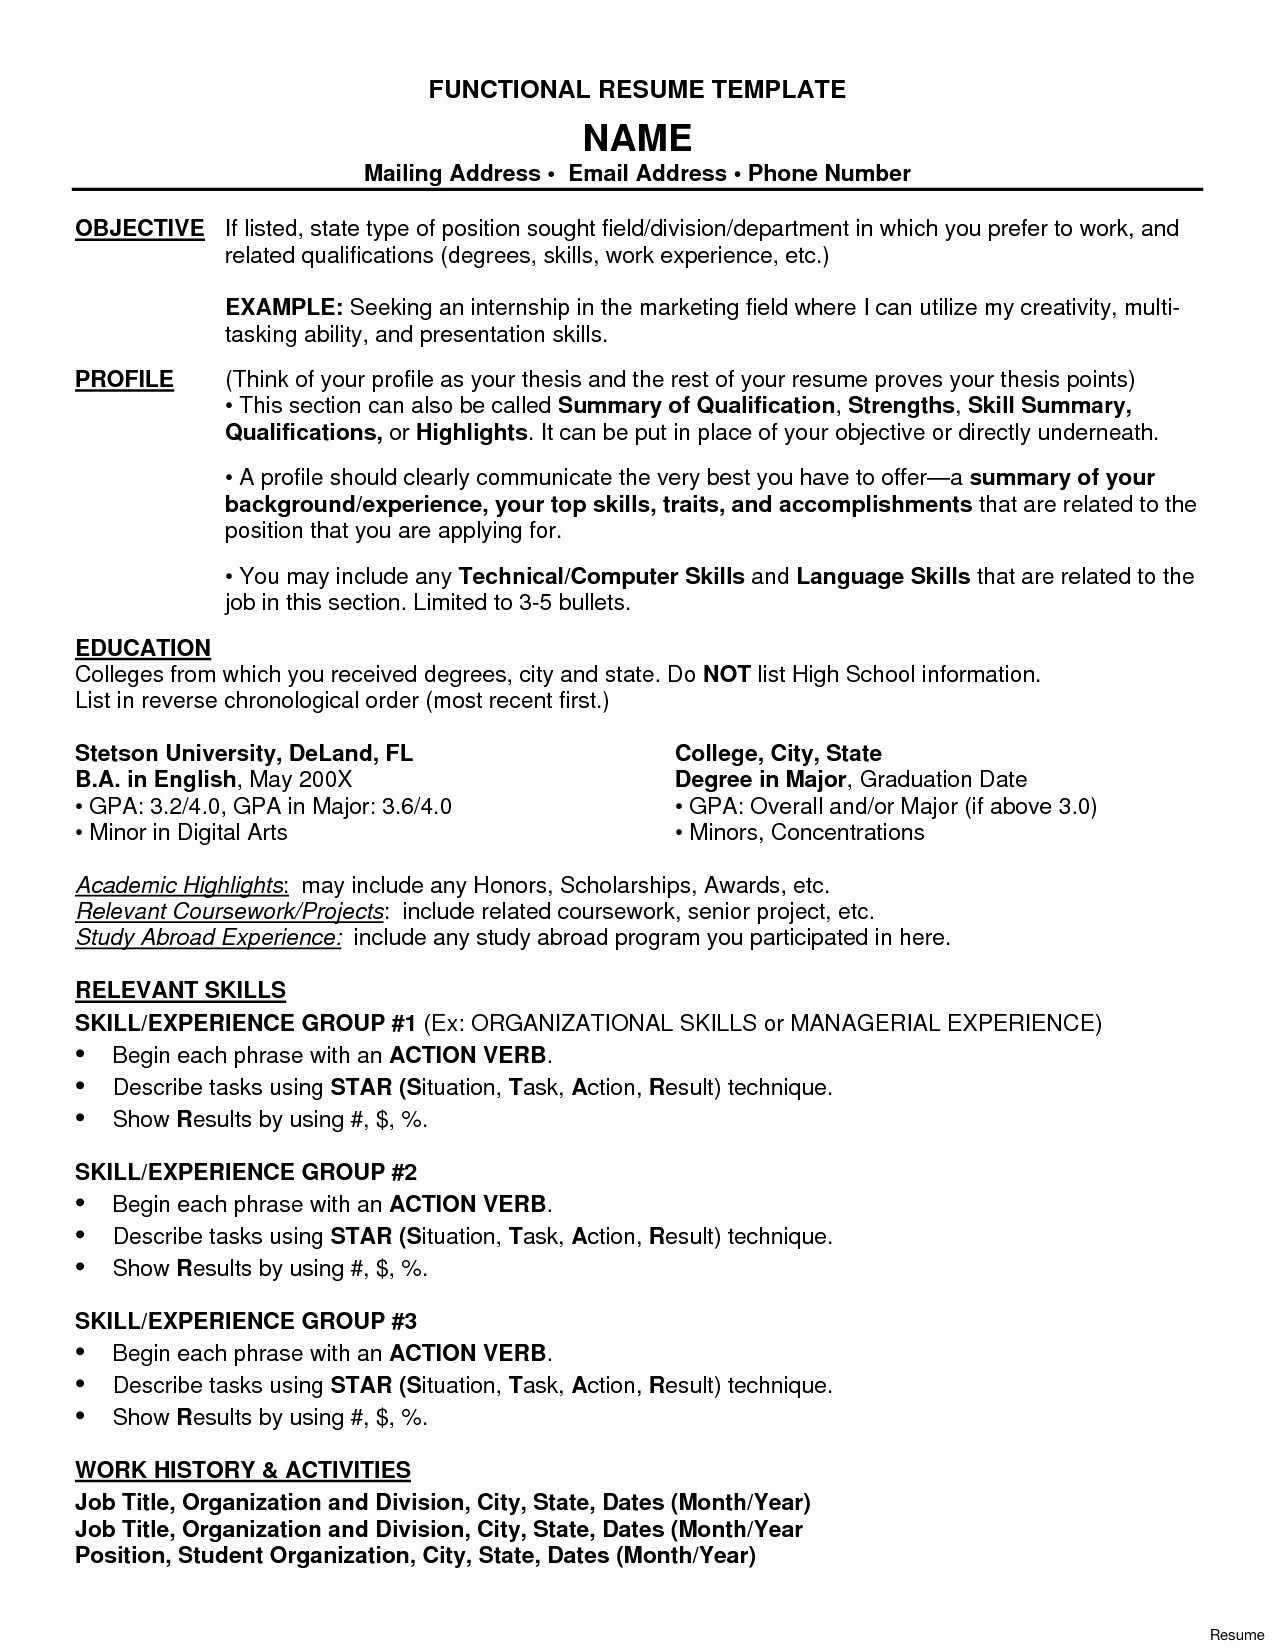 Combination Resume Template for Stay at Home Mom - Sample Resume for Stay at Home Mom Returning to Work